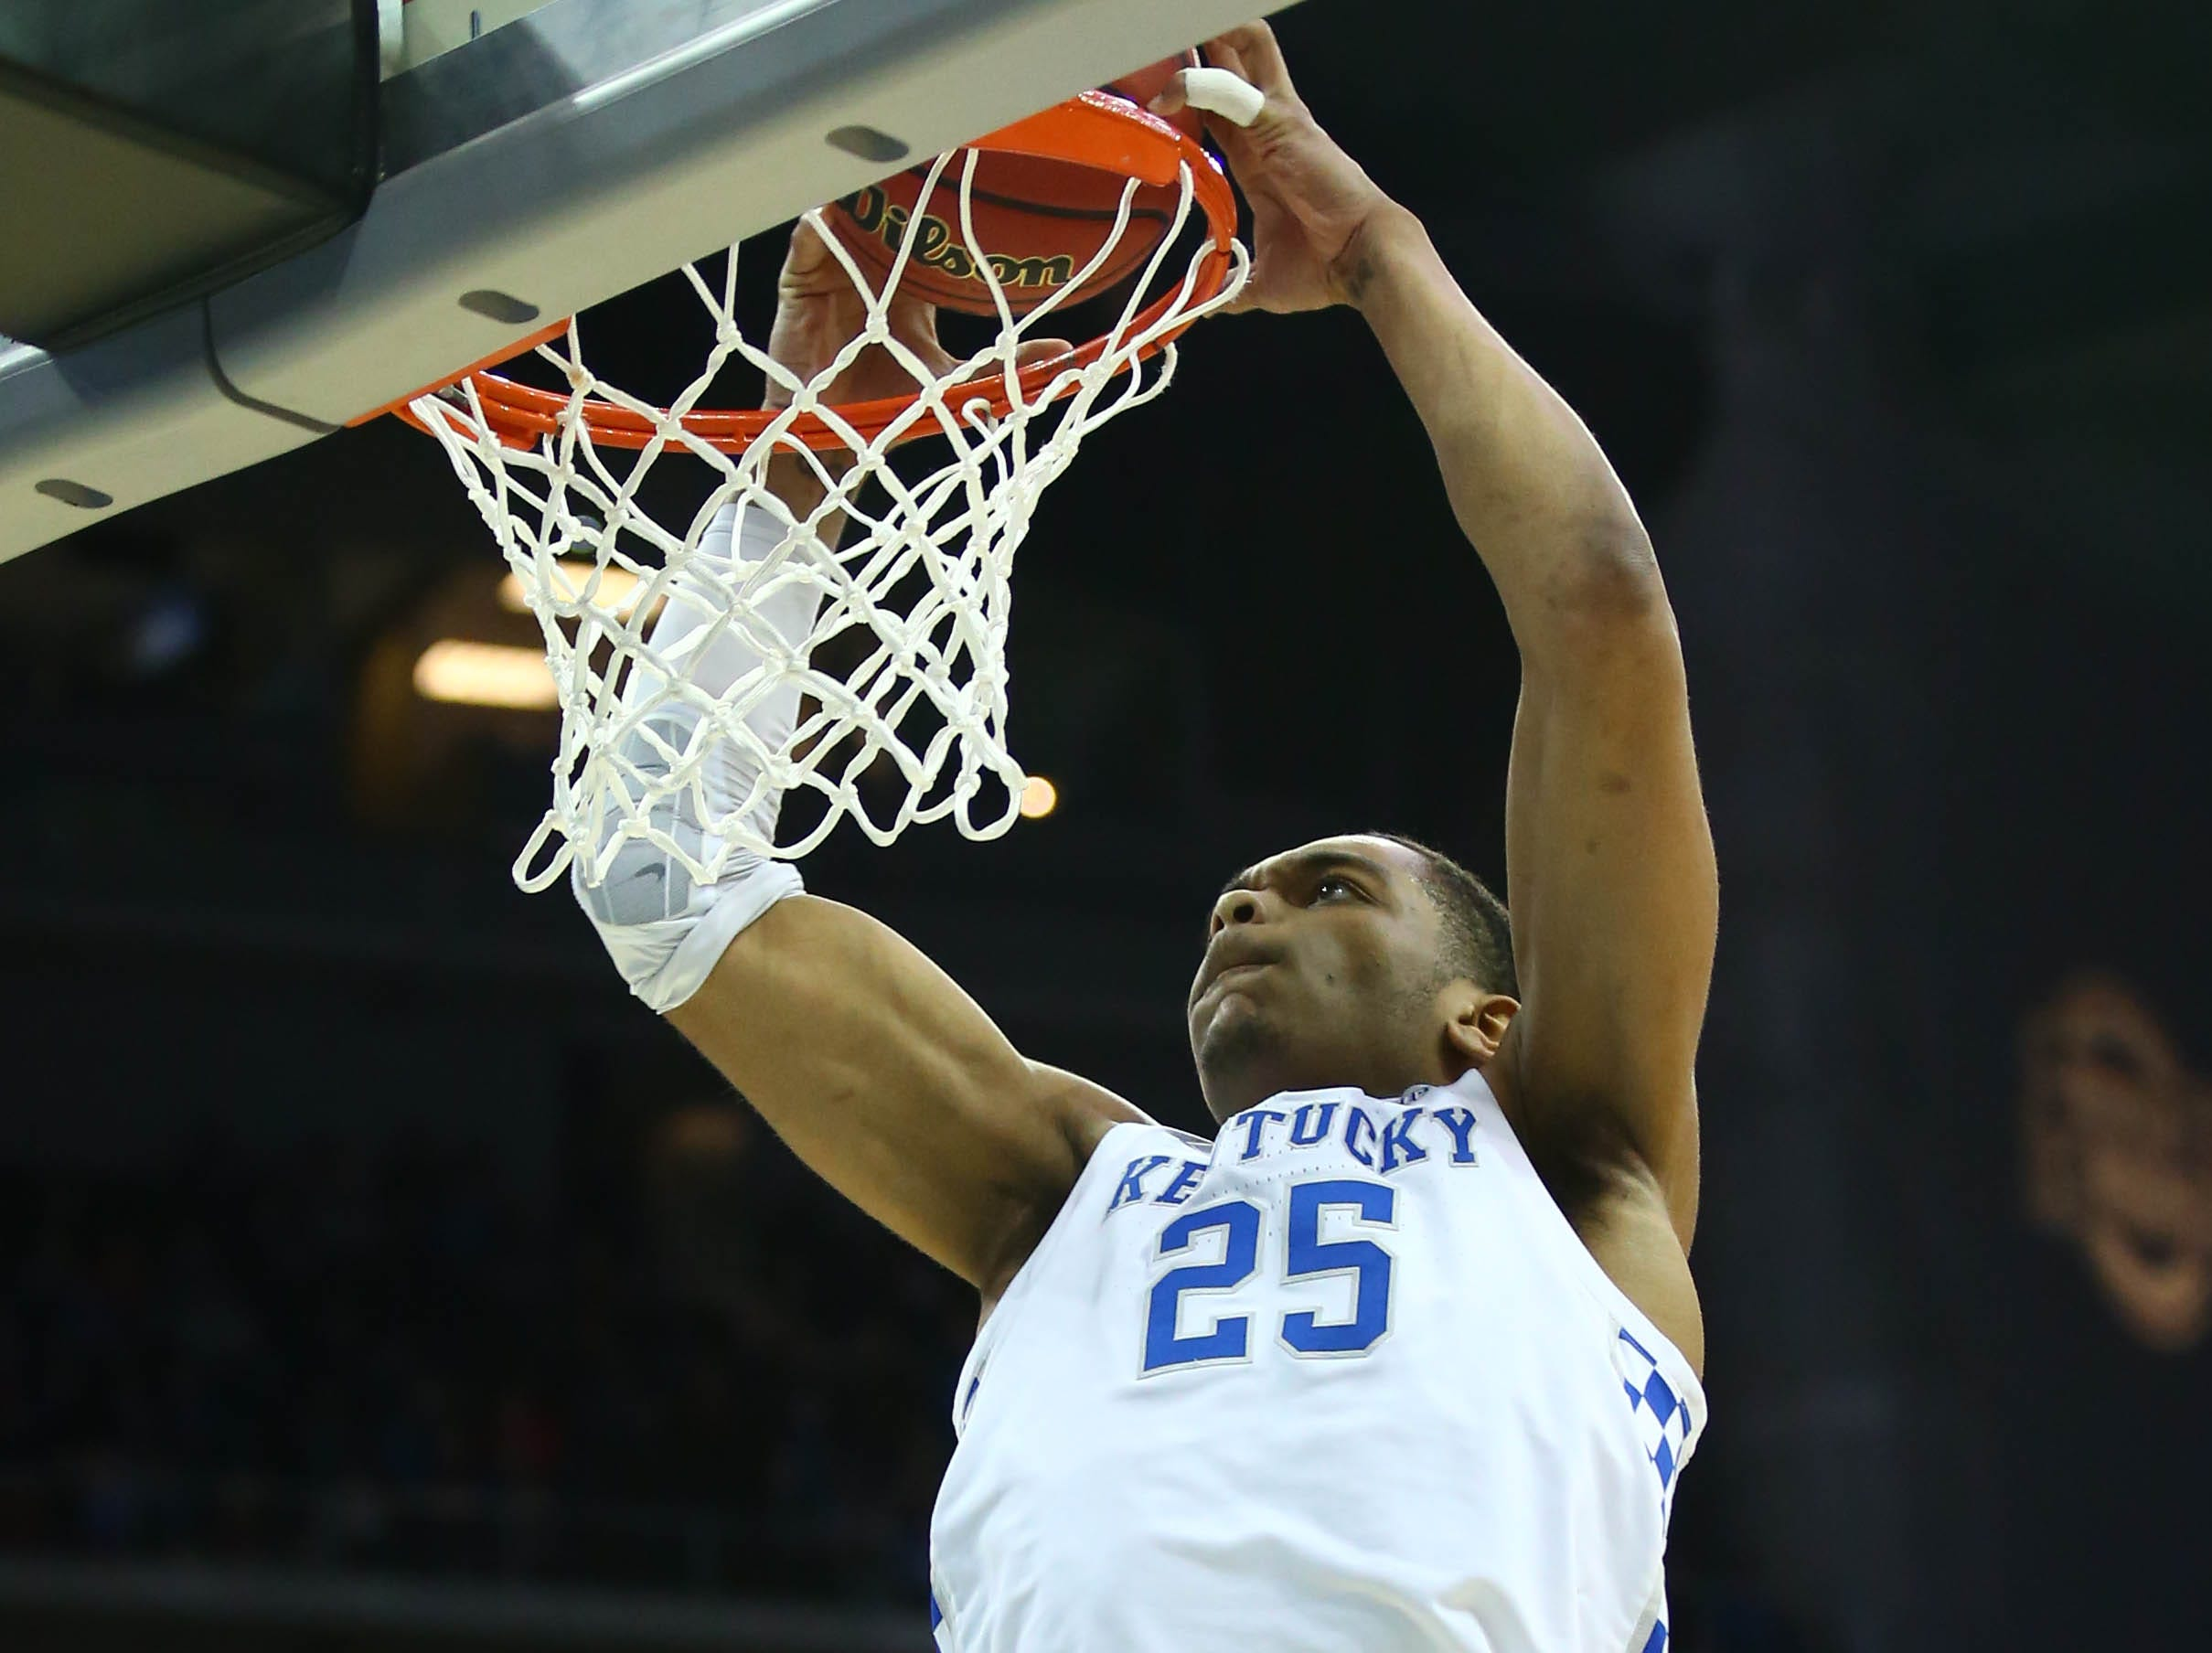 Mar 31, 2019; Kansas City, MO, United States; Kentucky Wildcats forward PJ Washington (25) dunks the ball against the Auburn Tigers during the second half in the championship game of the midwest regional of the 2019 NCAA Tournament at Sprint Center. Mandatory Credit: Jay Biggerstaff-USA TODAY Sports